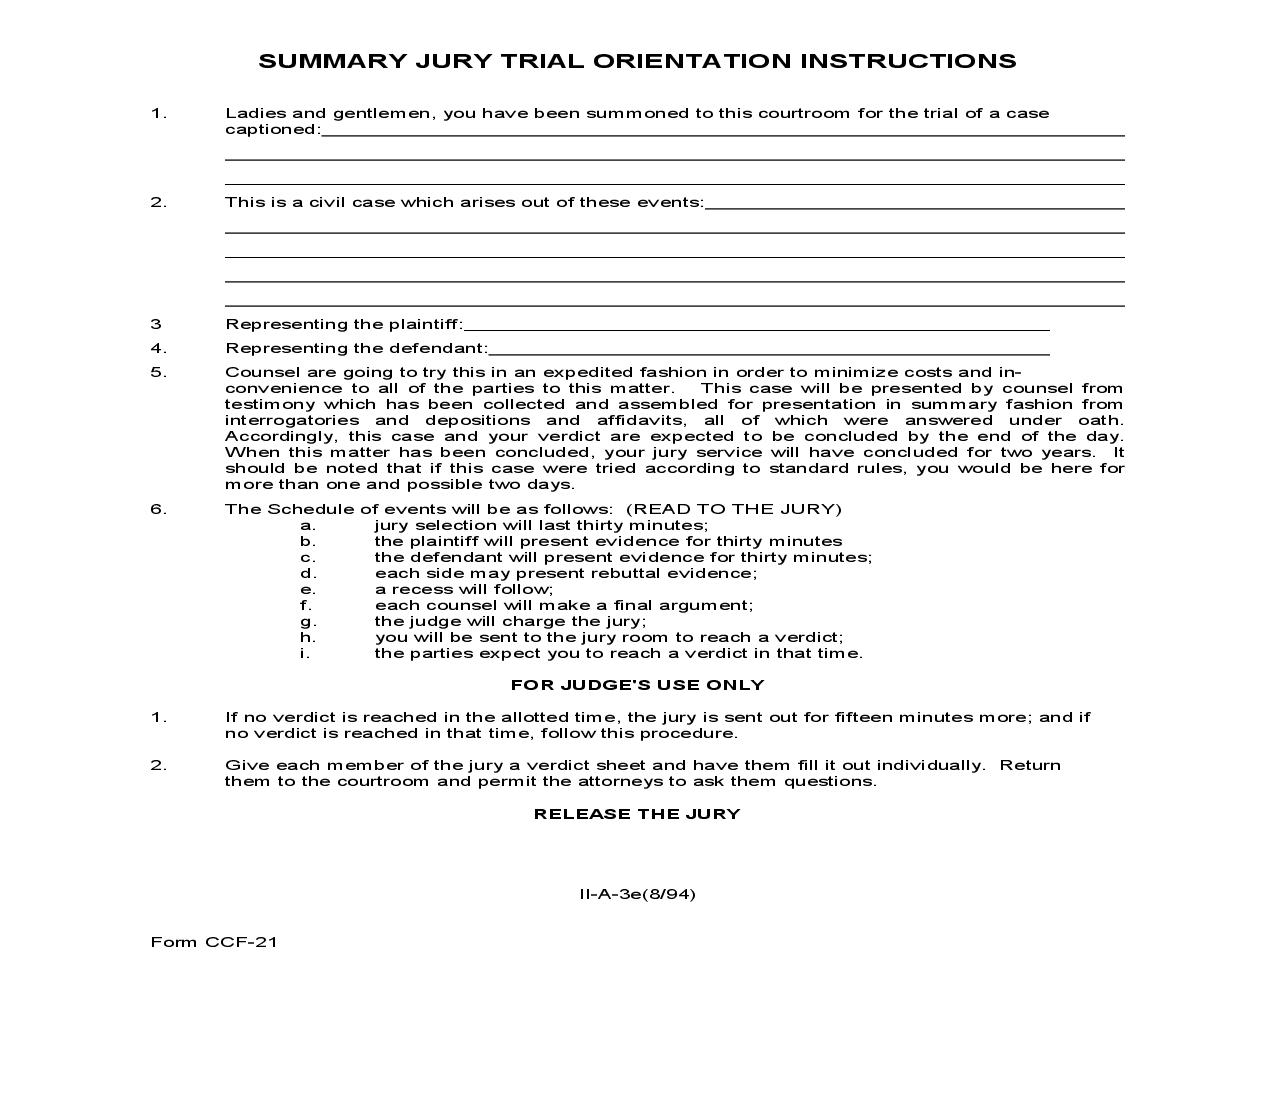 Summary Jury Trial Orientation Instructions {CCF-21} | Pdf Fpdf Doc Docx | North Carolina